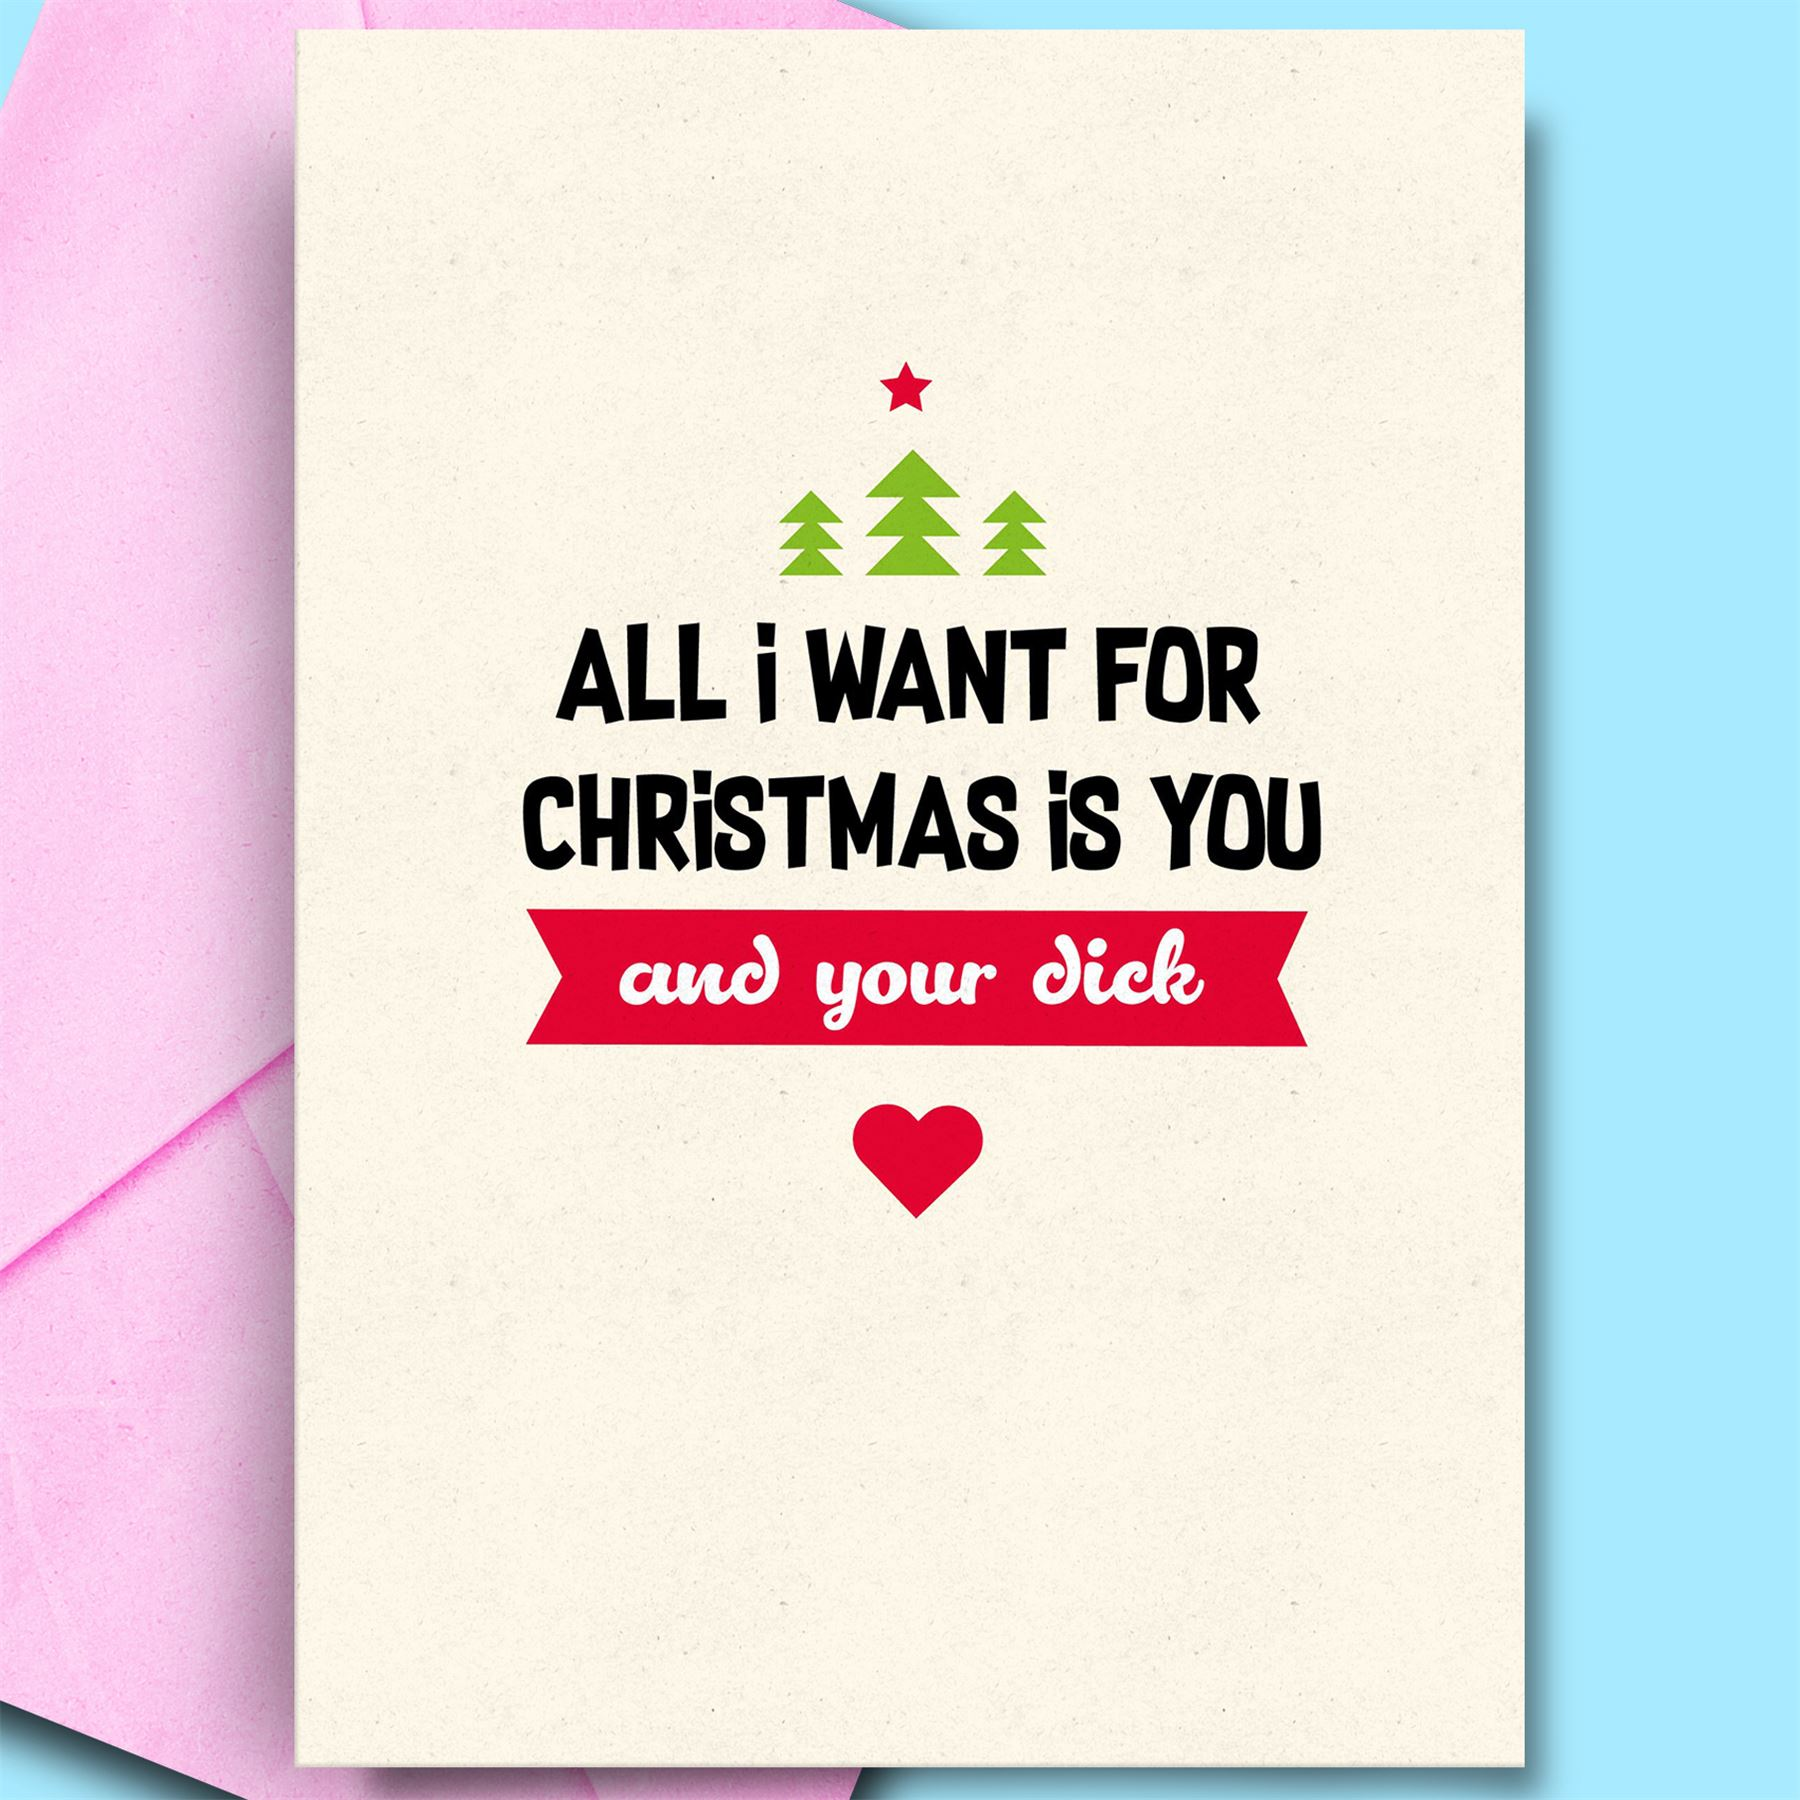 Cool Christmas Cards.Details About Cool Christmas Cards For Husband Cheeky Card Daughter Brother Boyfriend Funny